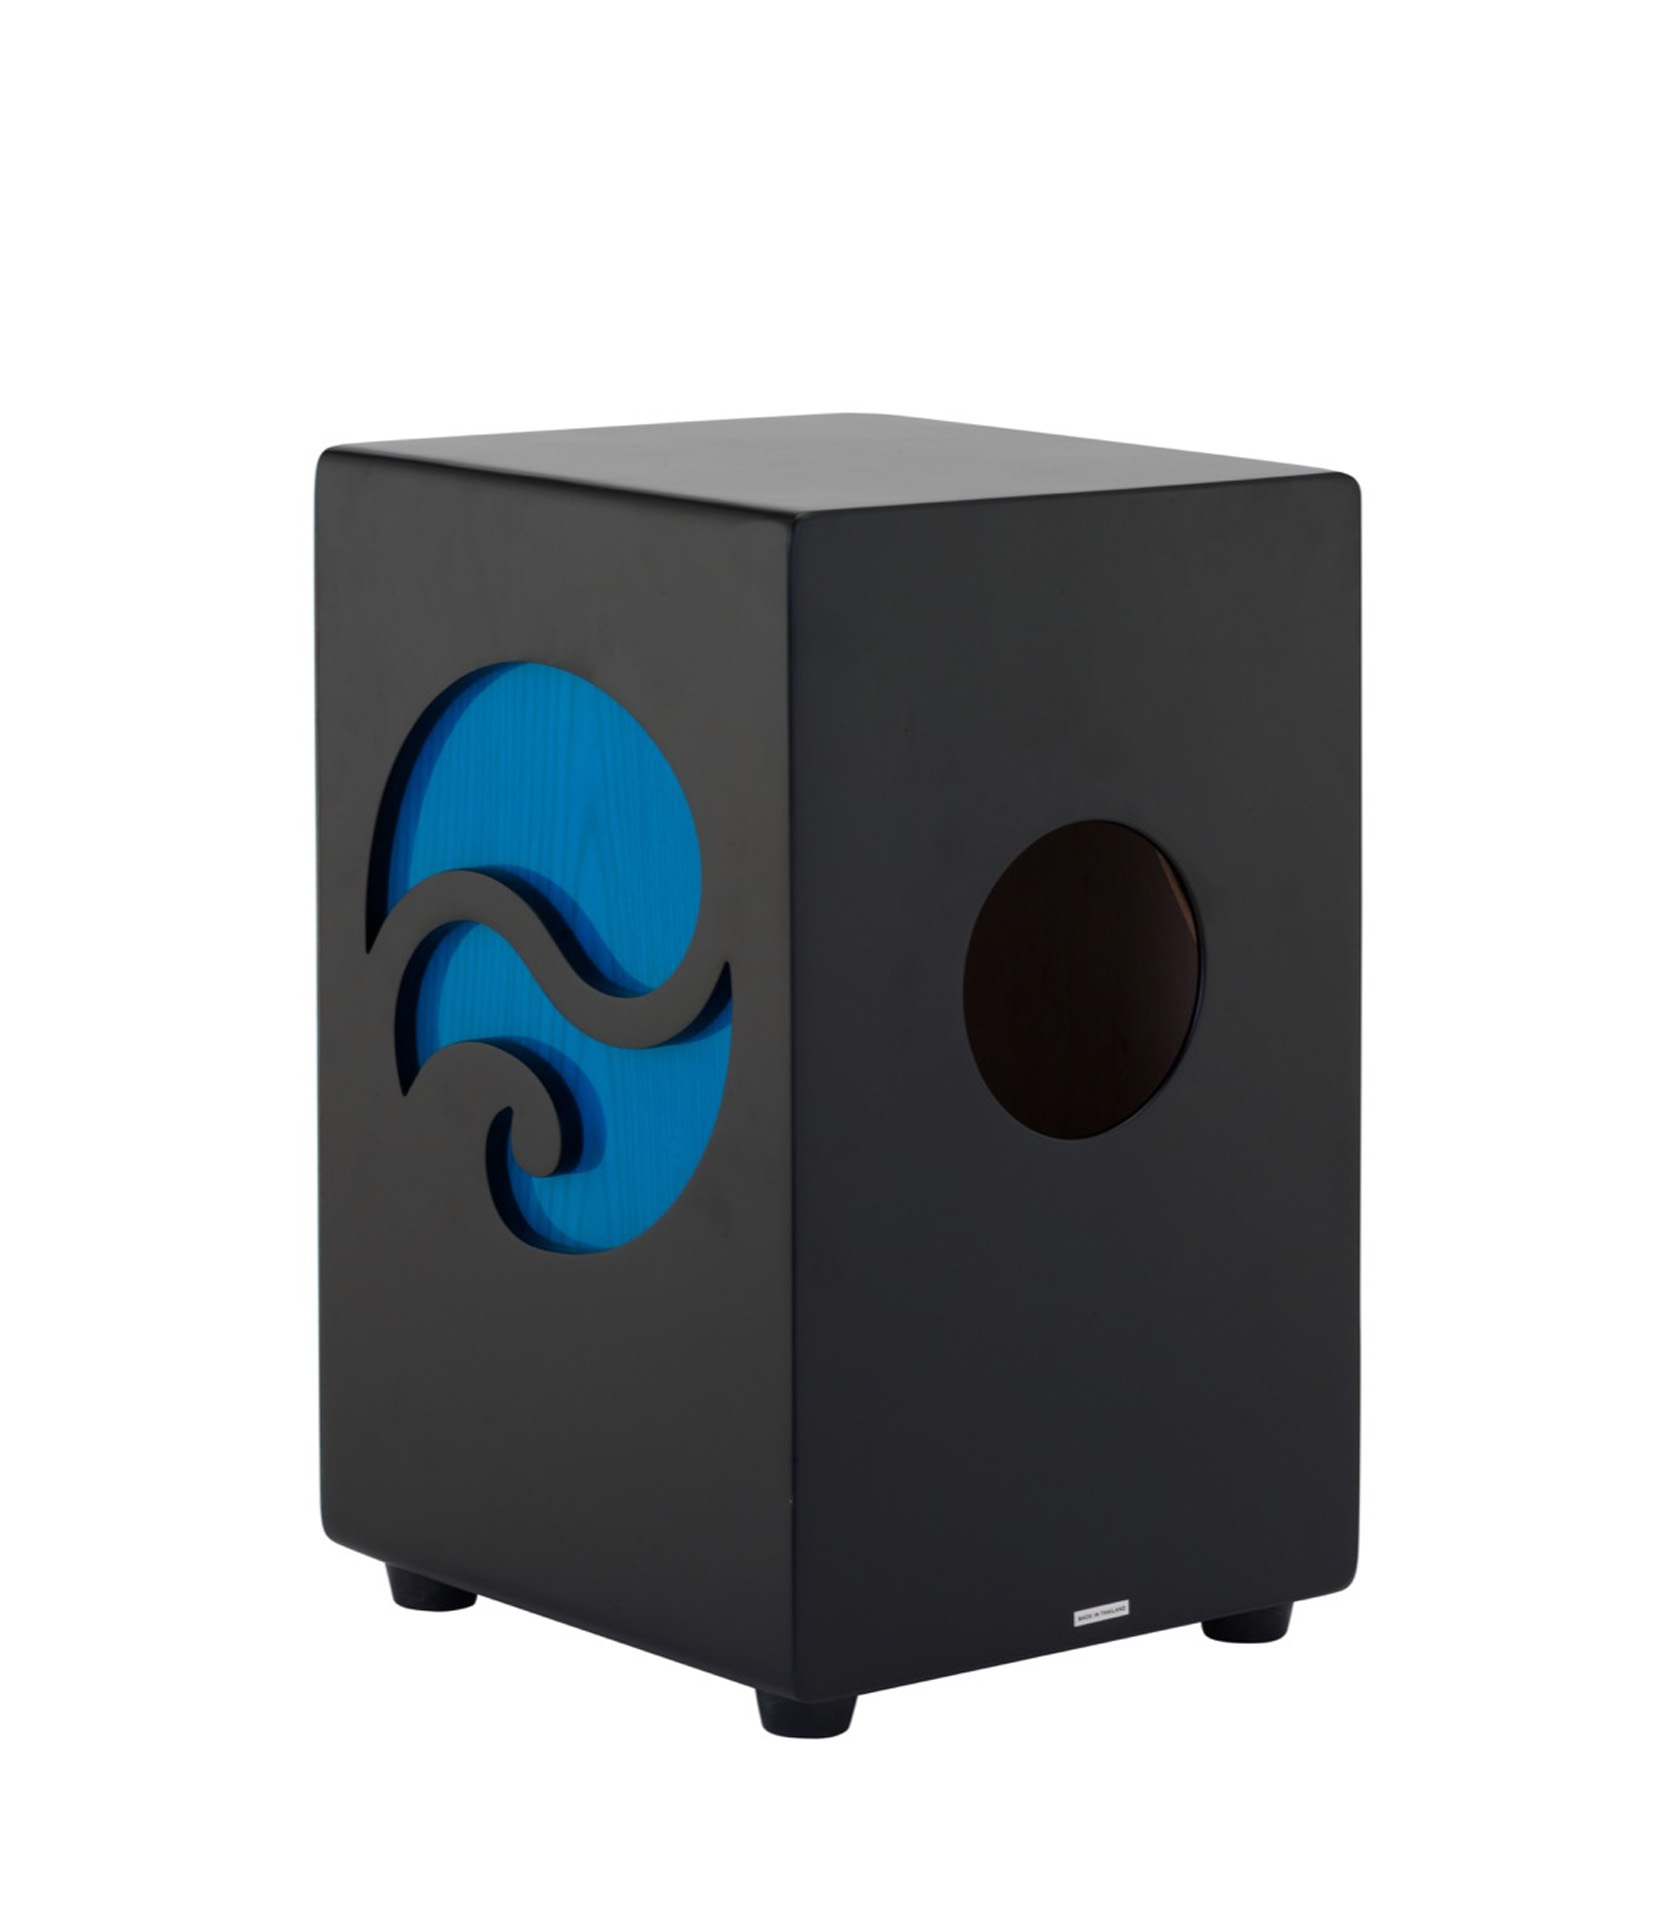 PBC 53D 539 3 D Cajon Wave DRSign - PBC-53D#539 - Melody House Dubai, UAE